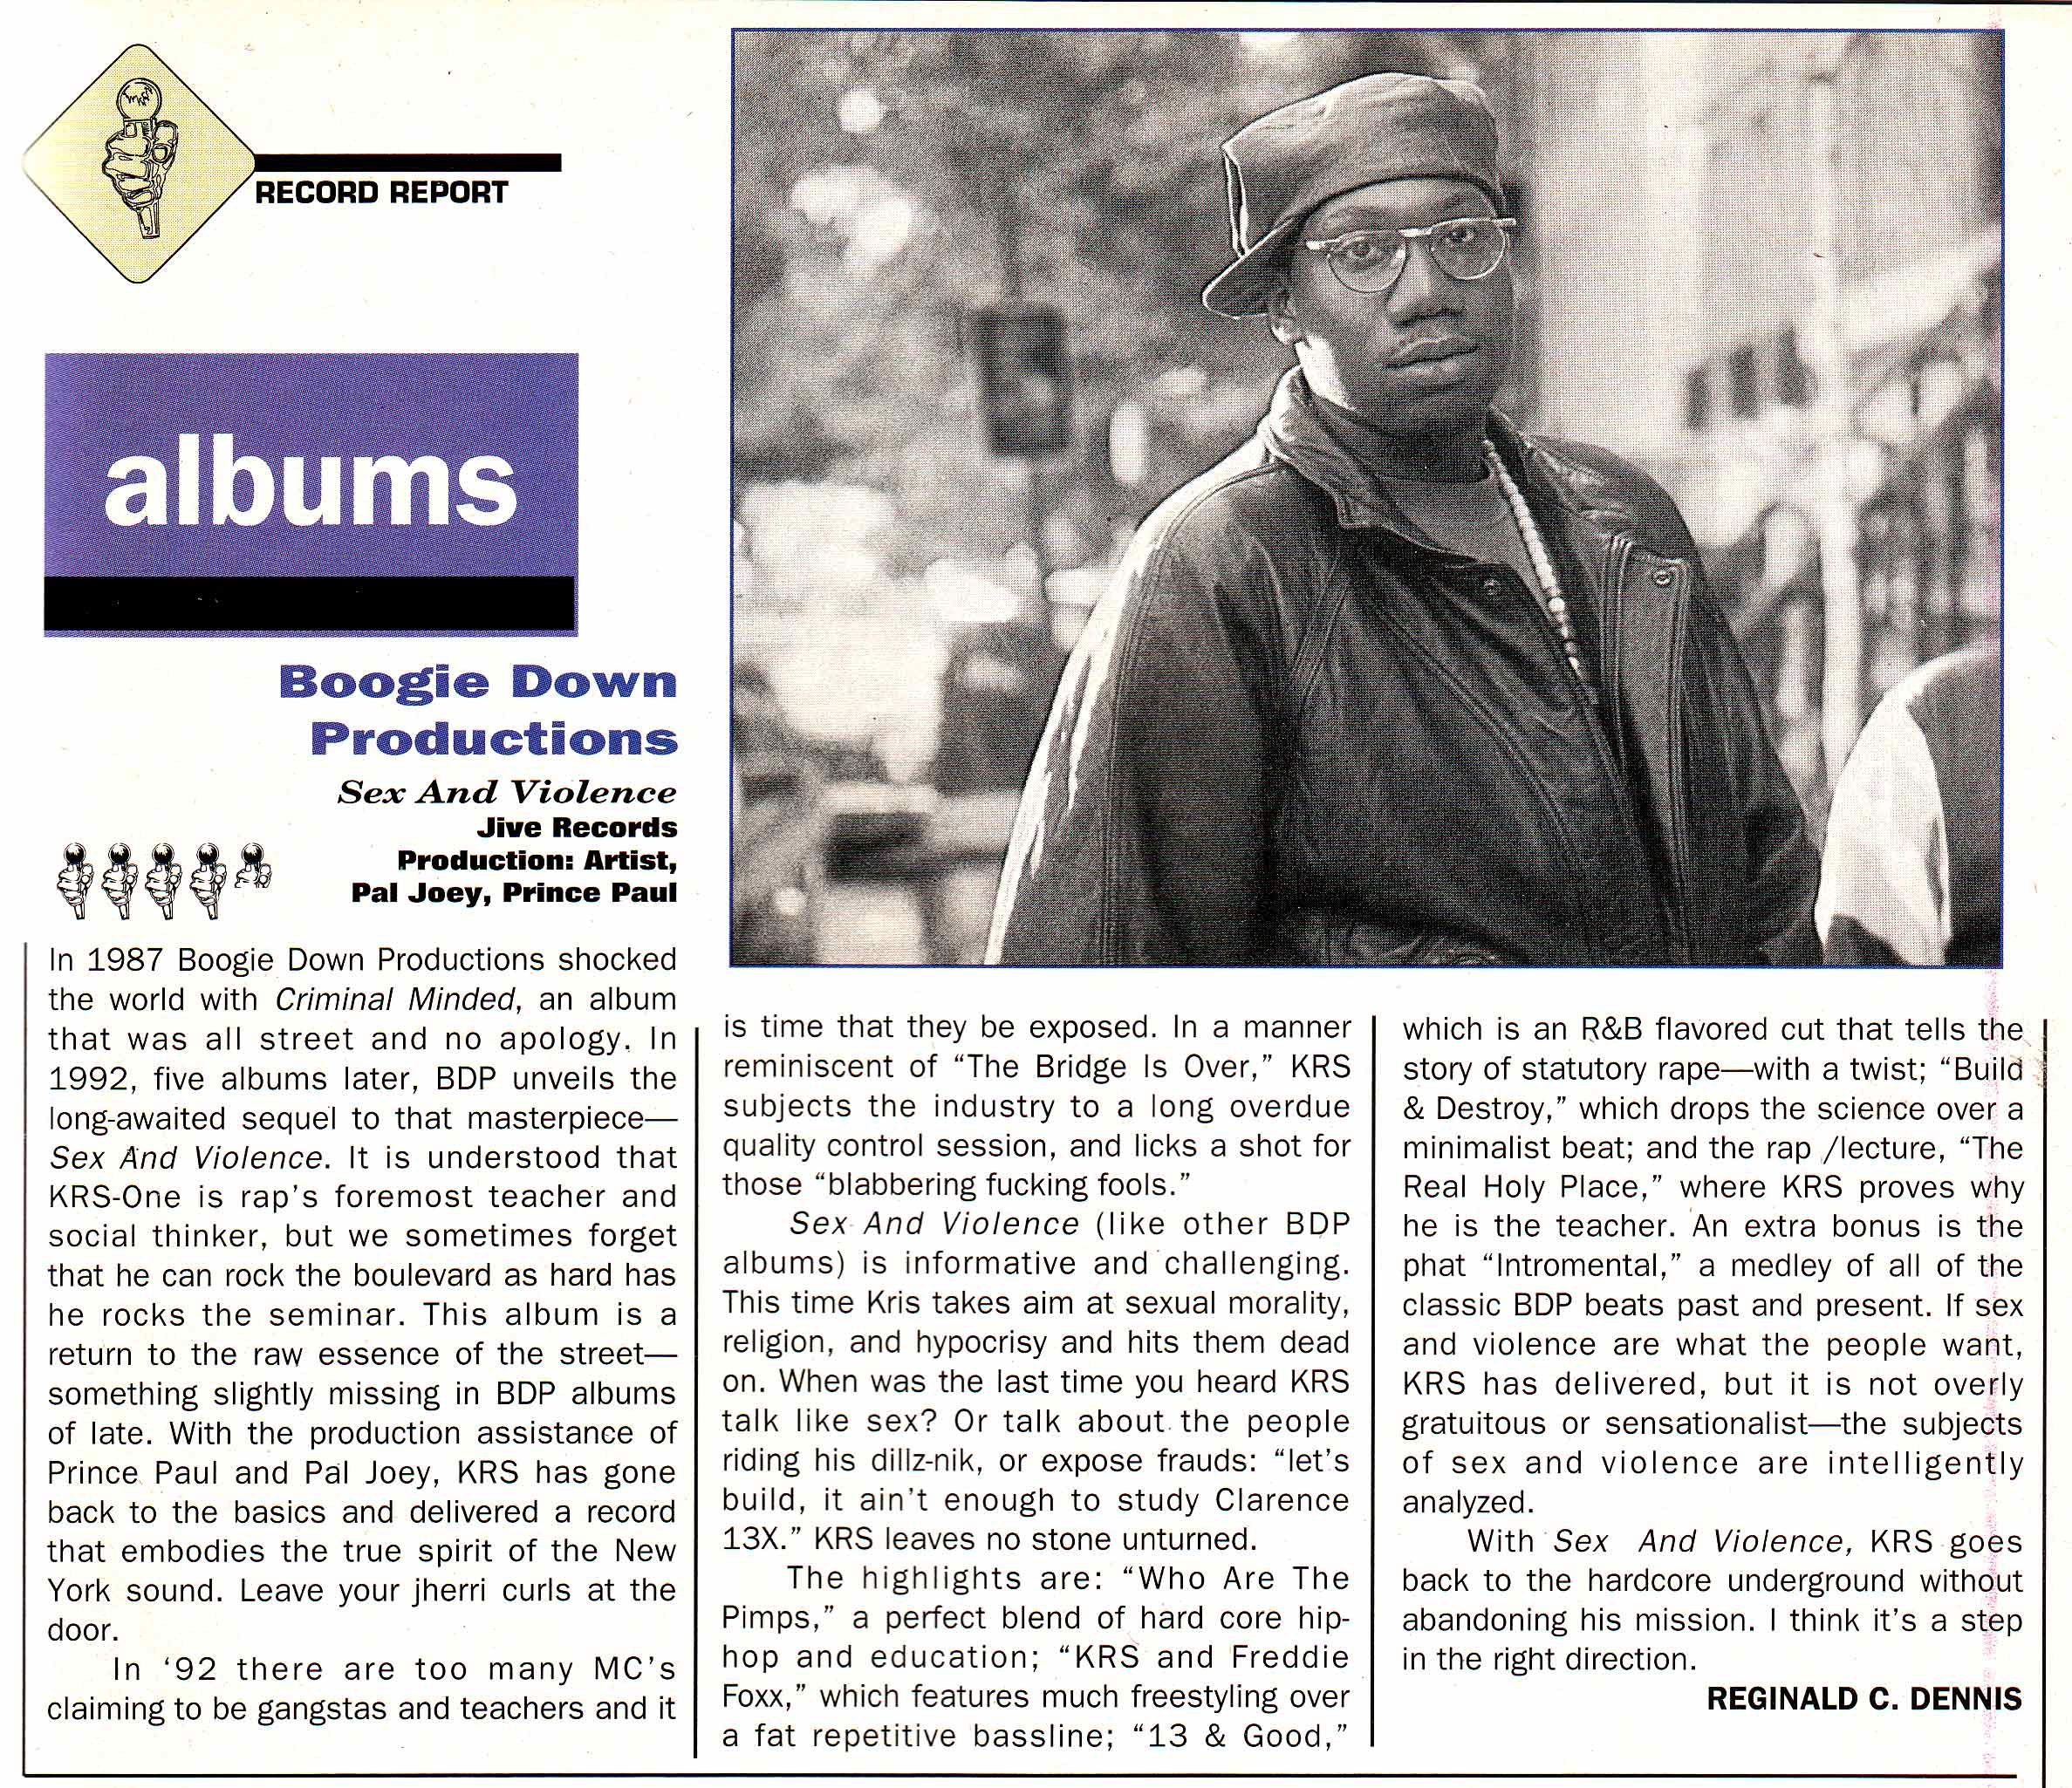 Source Magazine's review of the Boogie Down Productions Sex And Violence album